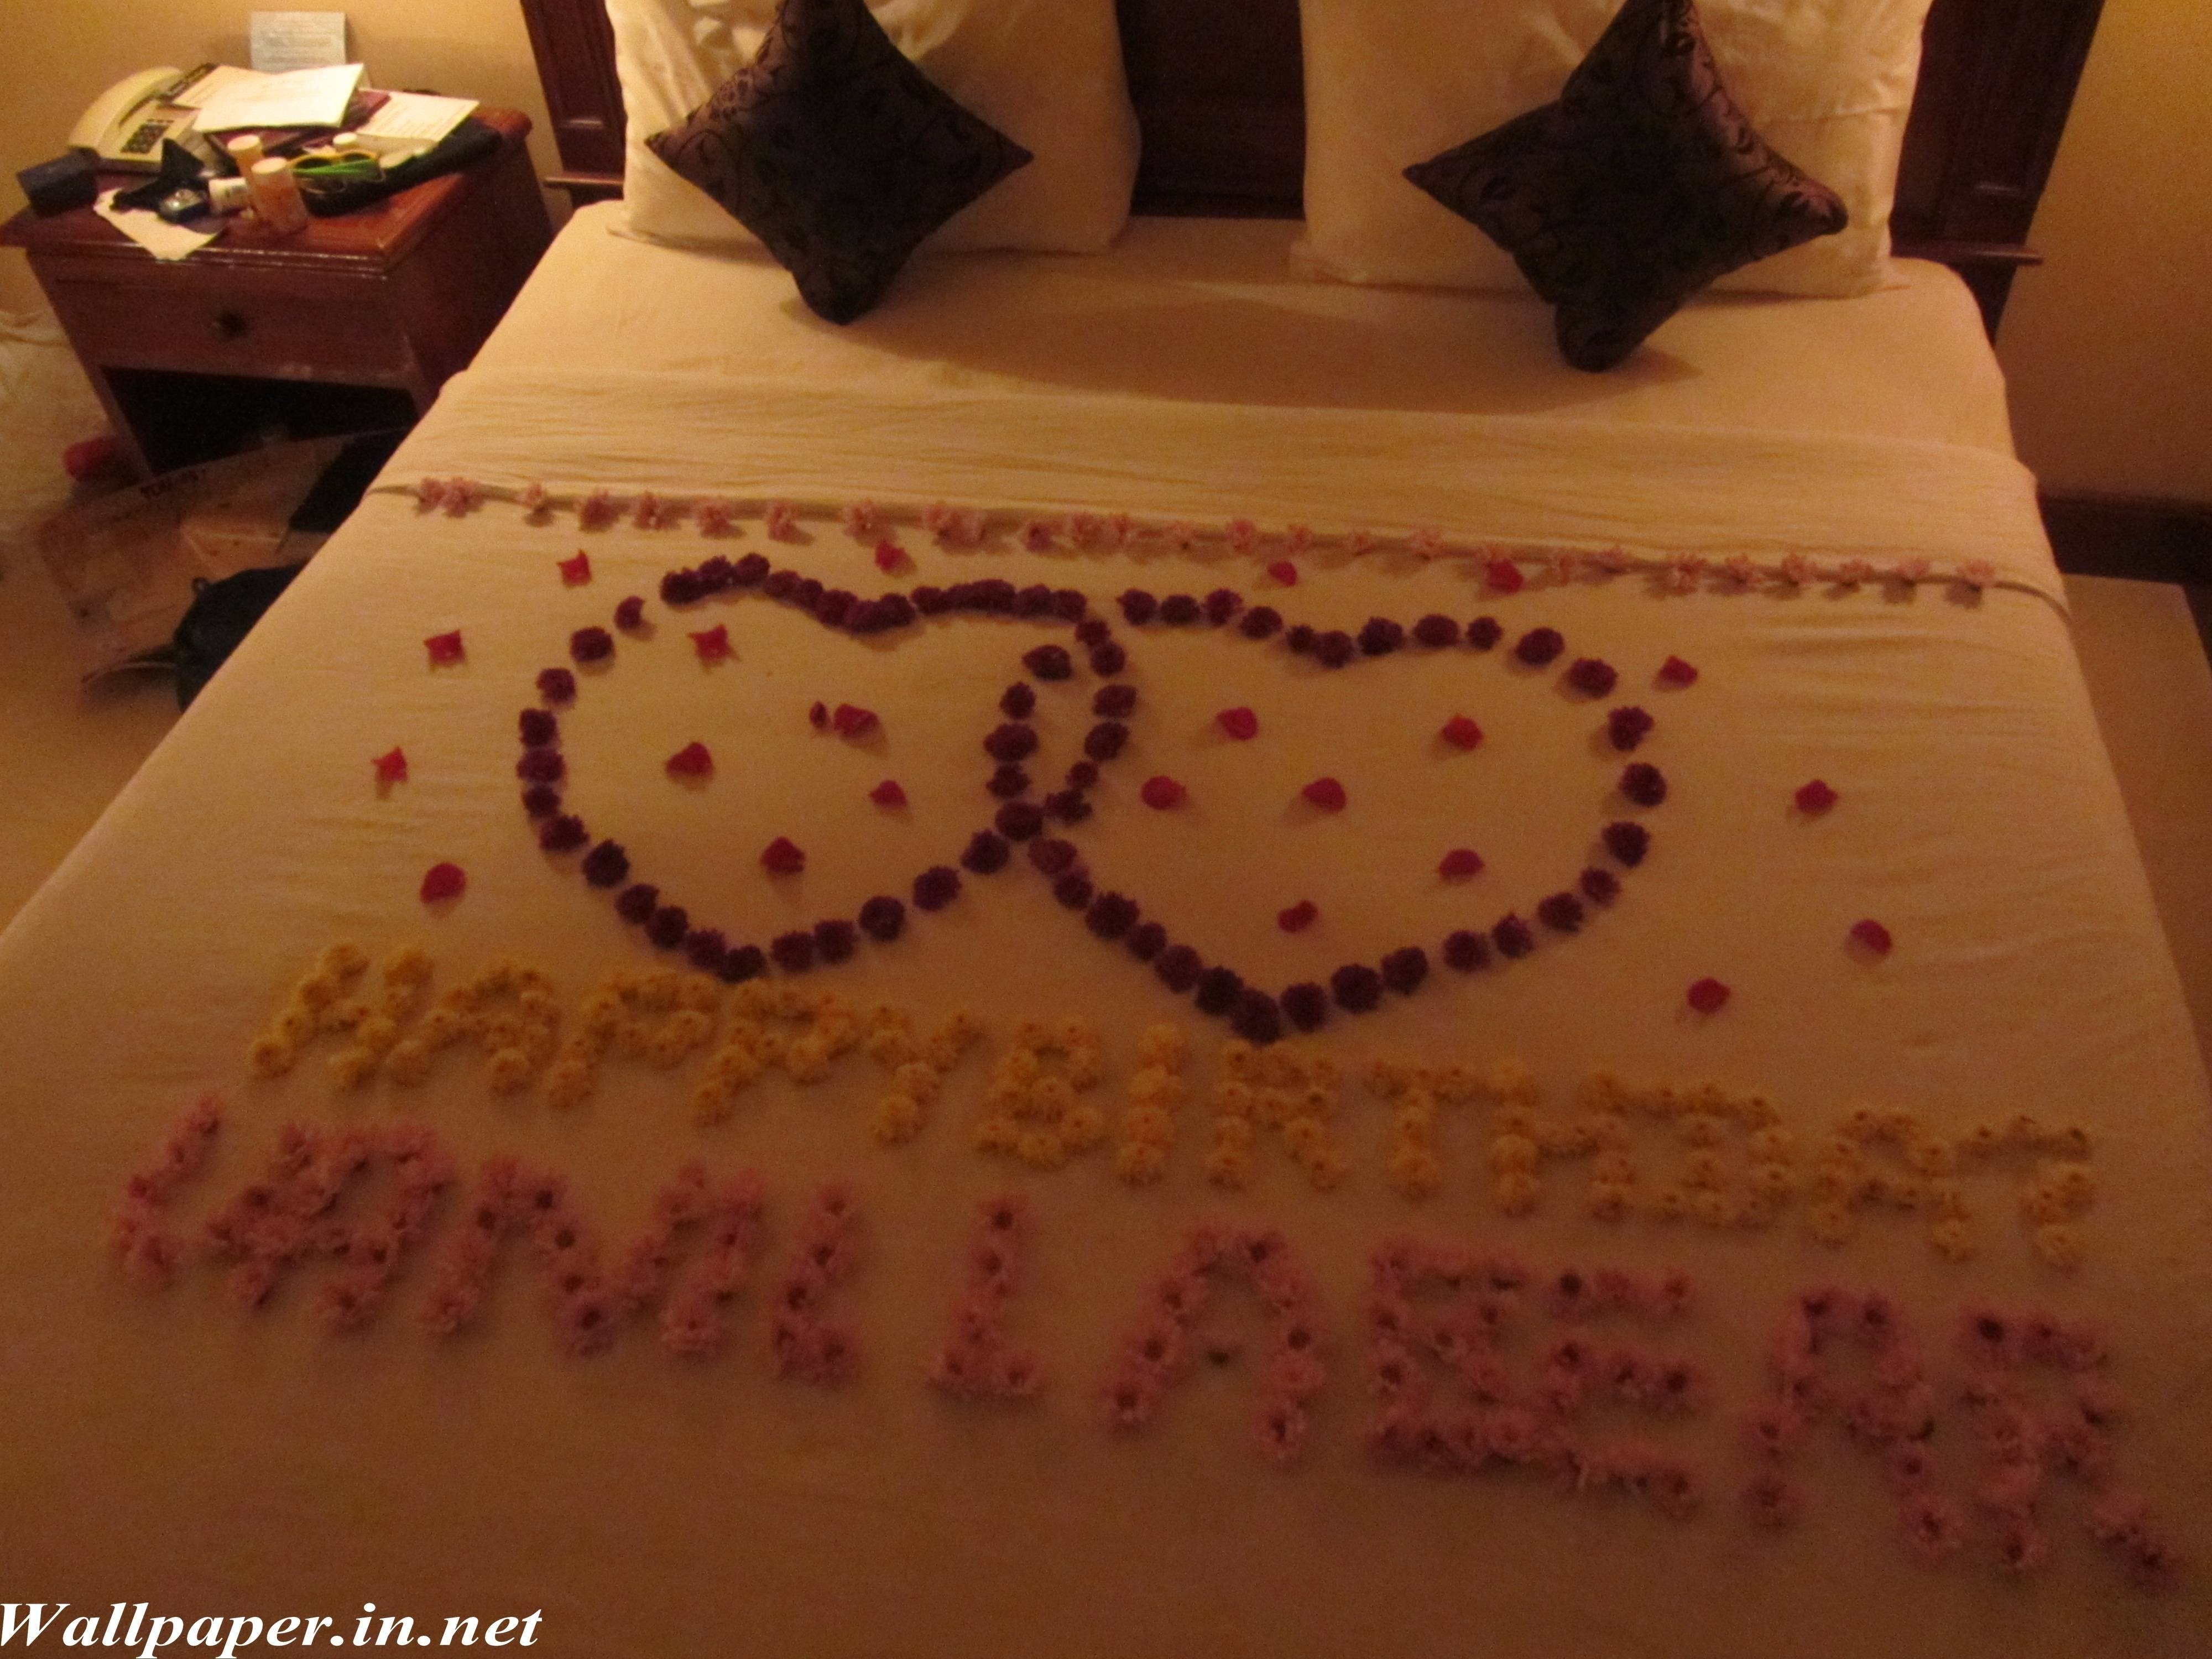 10 Trendy Romantic Ideas For My Wife wallpapers for happy birthday romantic gifts for wife 1 2020